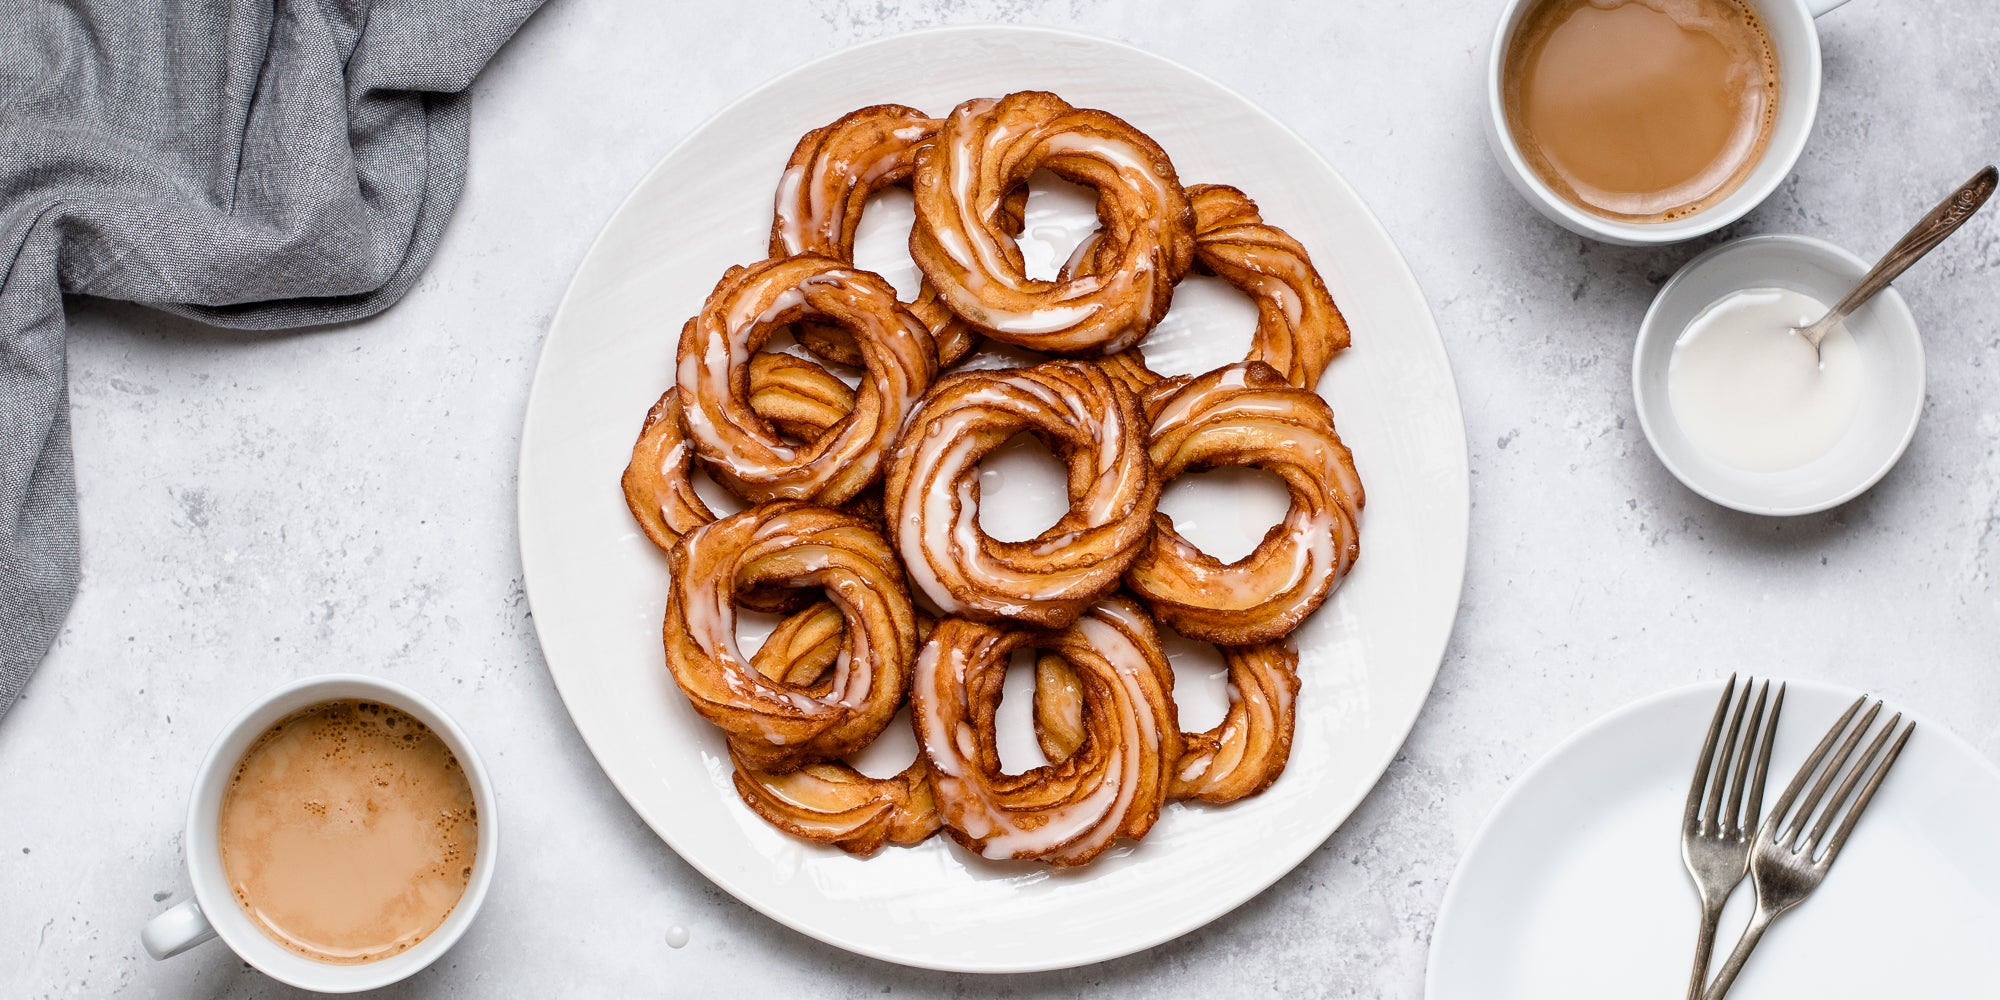 Top view of Apple Cider Crullers on a plate. Next to cups of coffee, and a bowl of icing ready to decorate